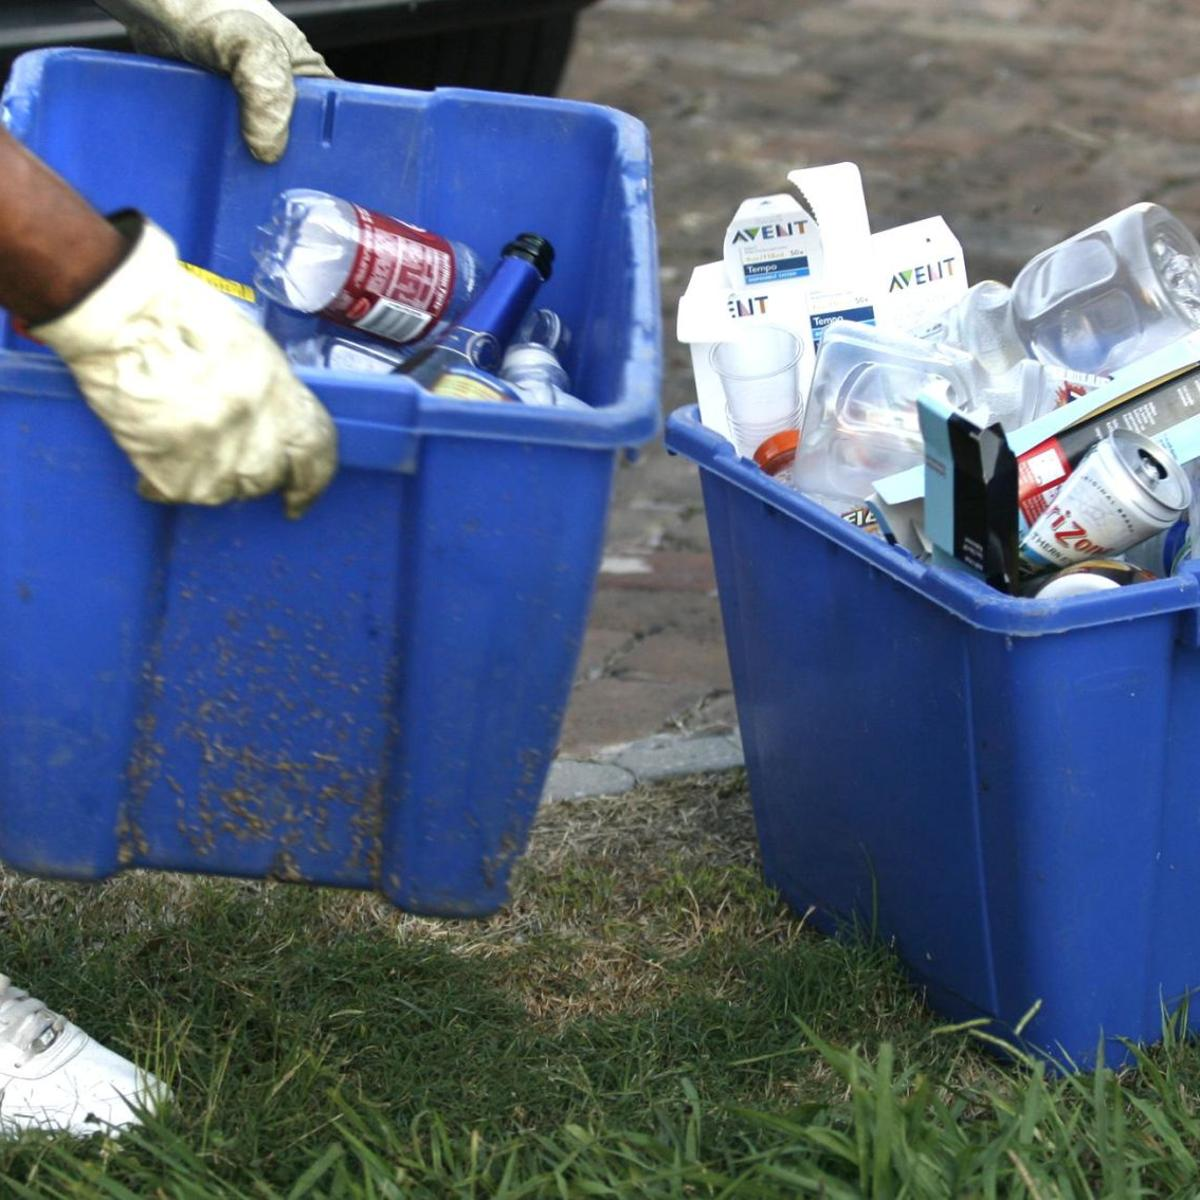 Largest Recycler In New Orleans Area Won T Take Household Discards Anymore Business News Nola Com